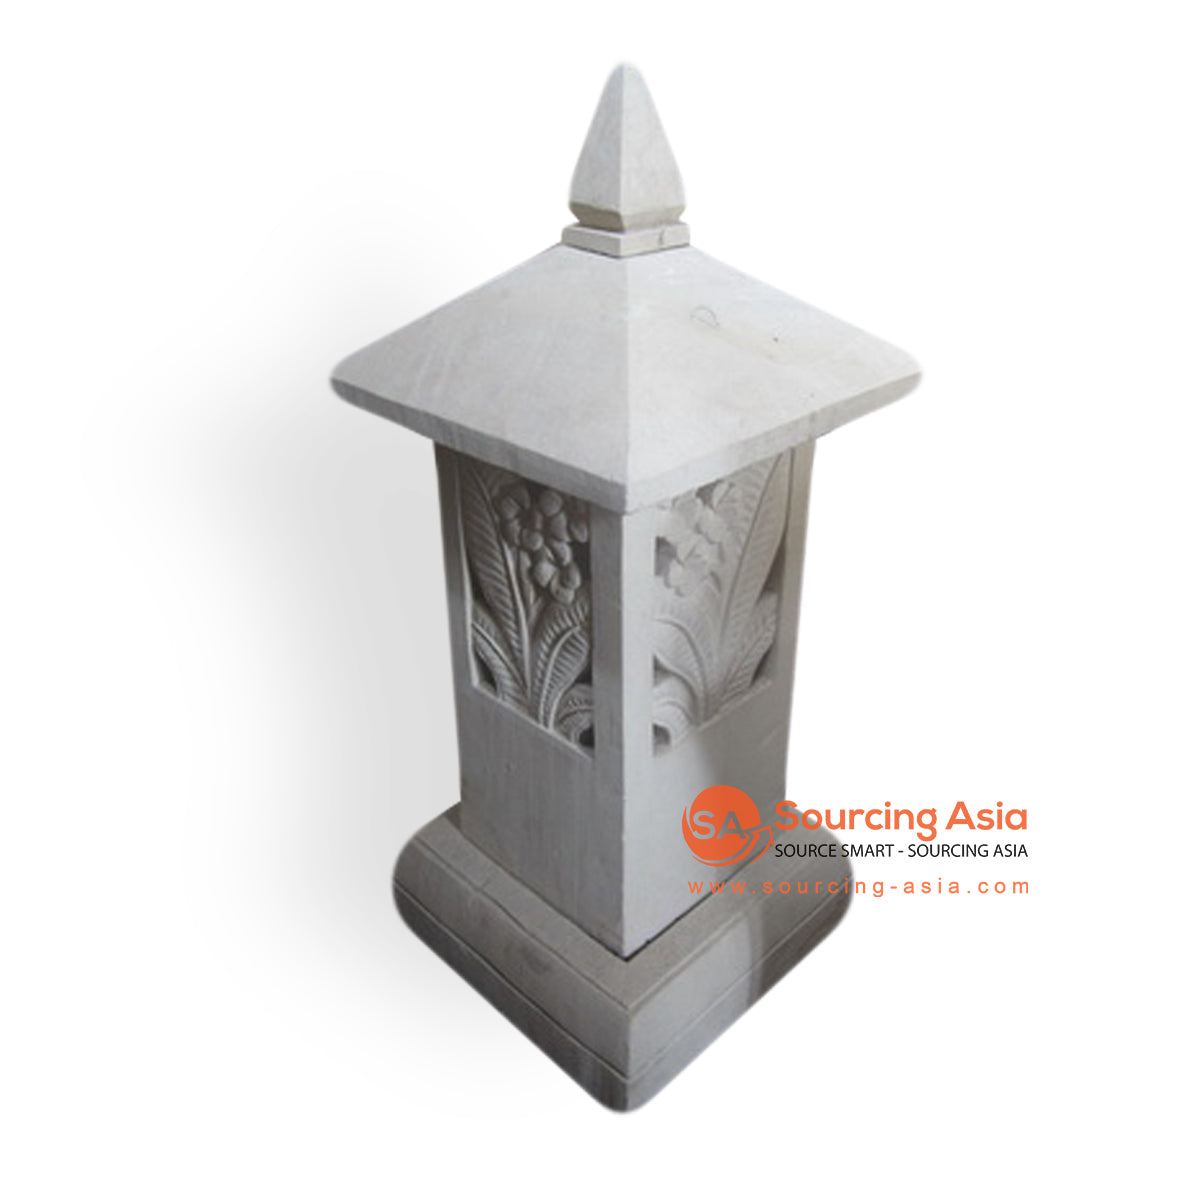 AGR026 CANDLE HOLDER WITH FRANGIPANI CARVING